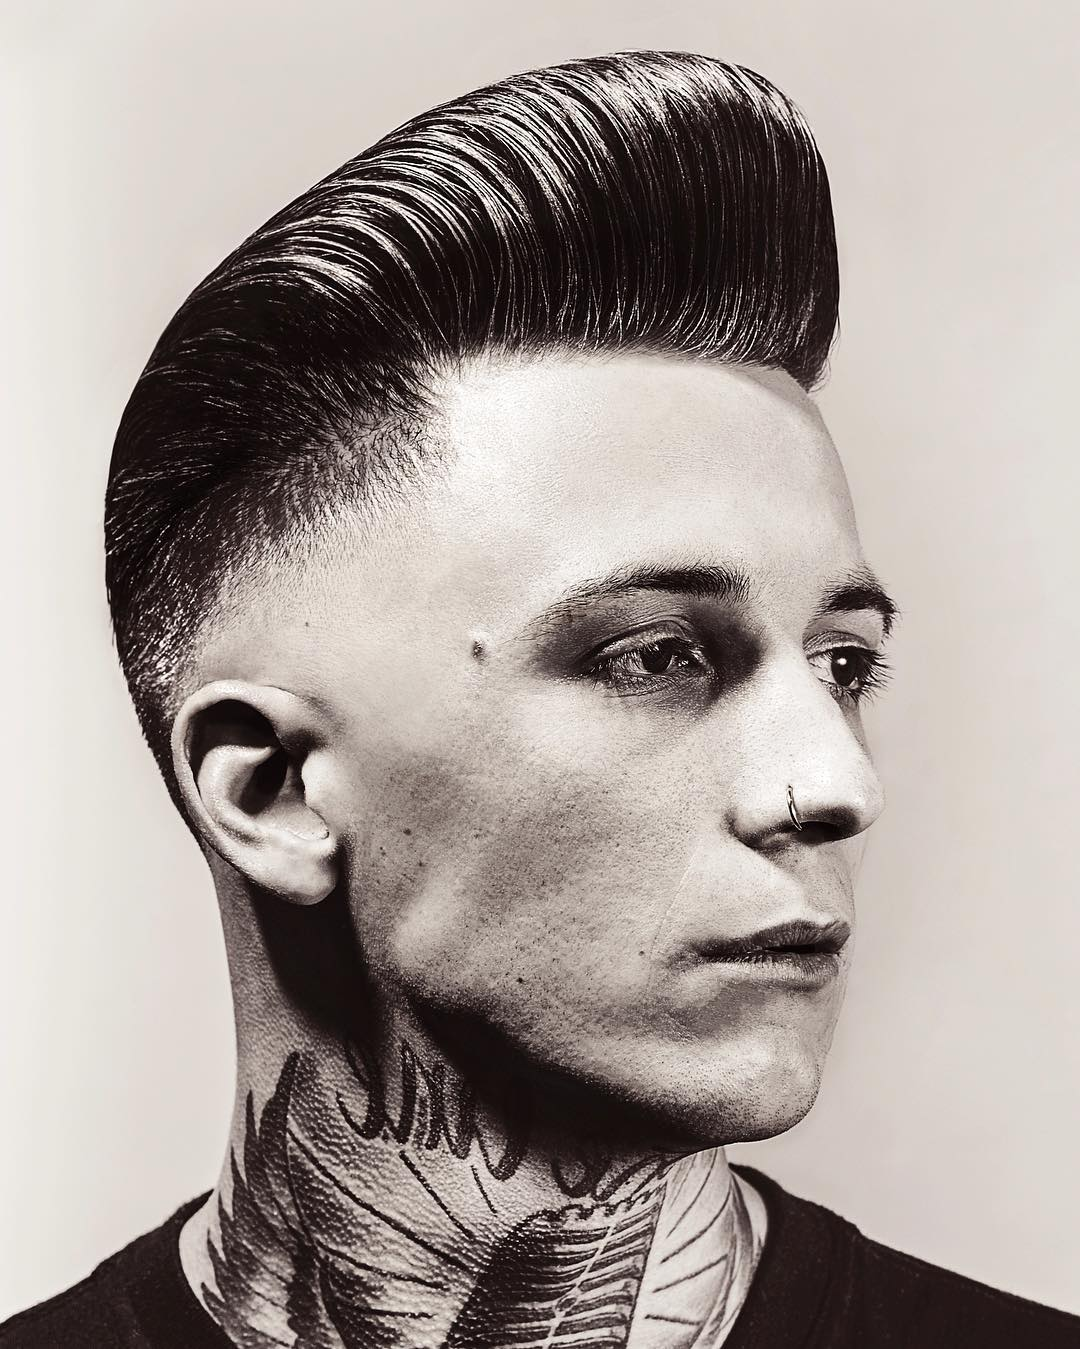 holytigerbarbershopgraz- Popular The Pompadour Haircut